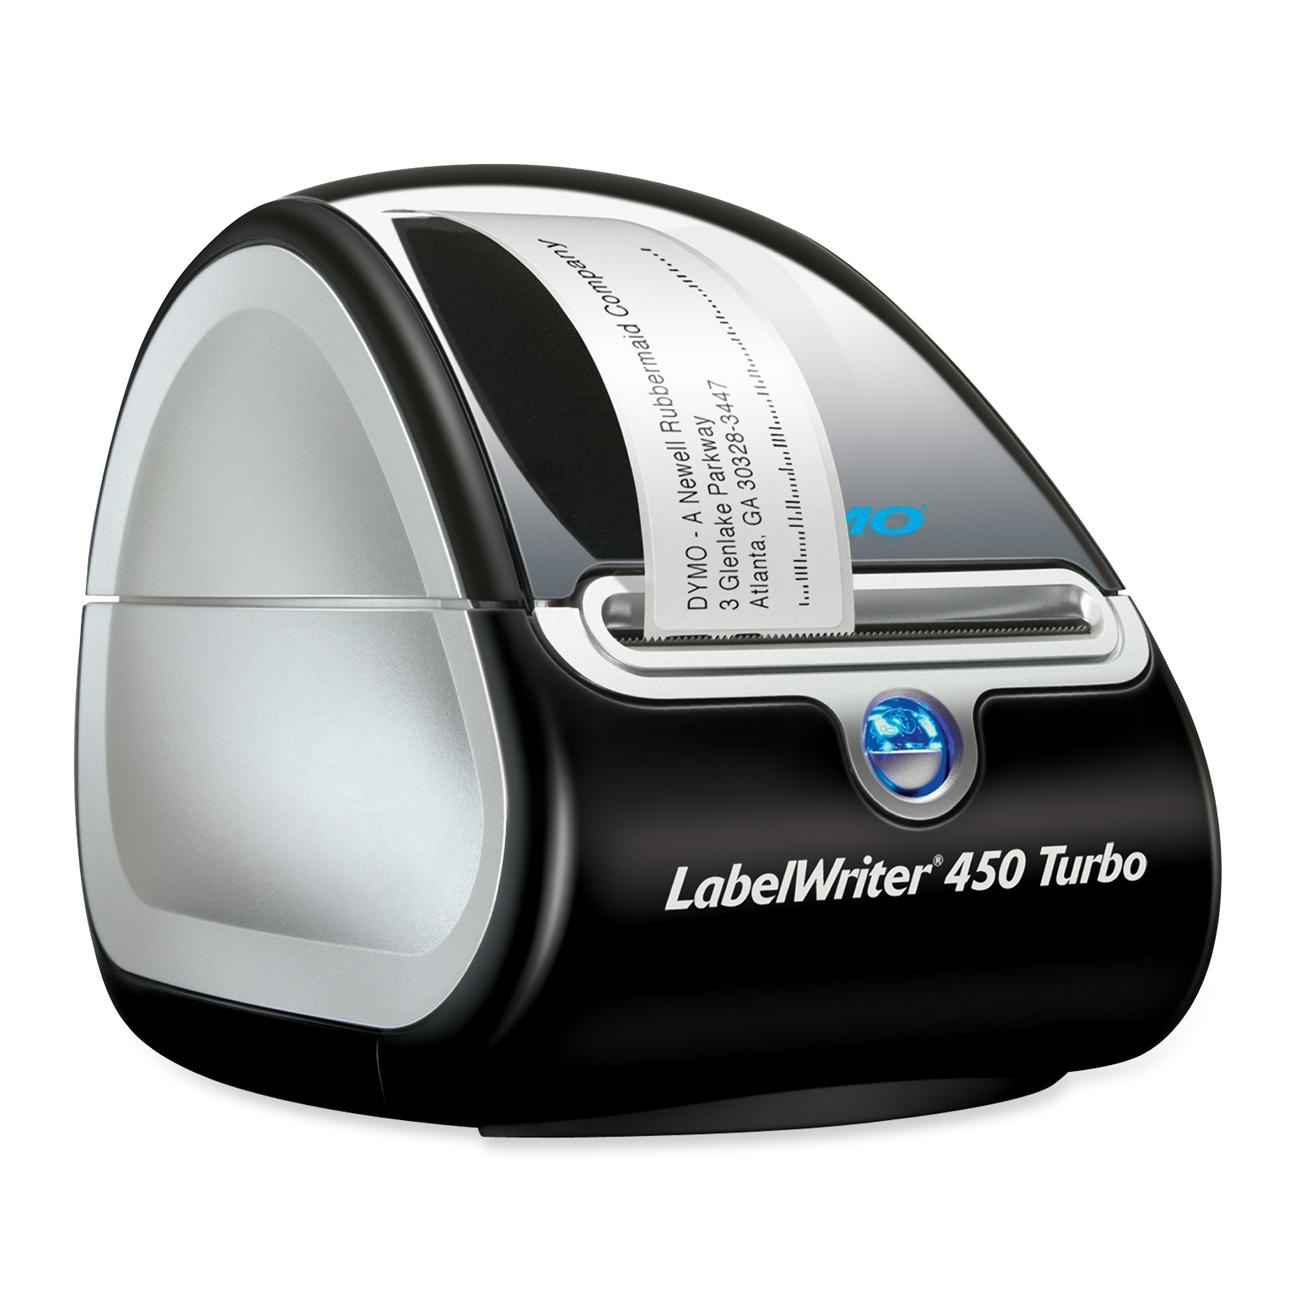 $99  - Dymo LabelWriter 450 Turbo Barcode Printer - Compatible with Lightspeed Onsite Only